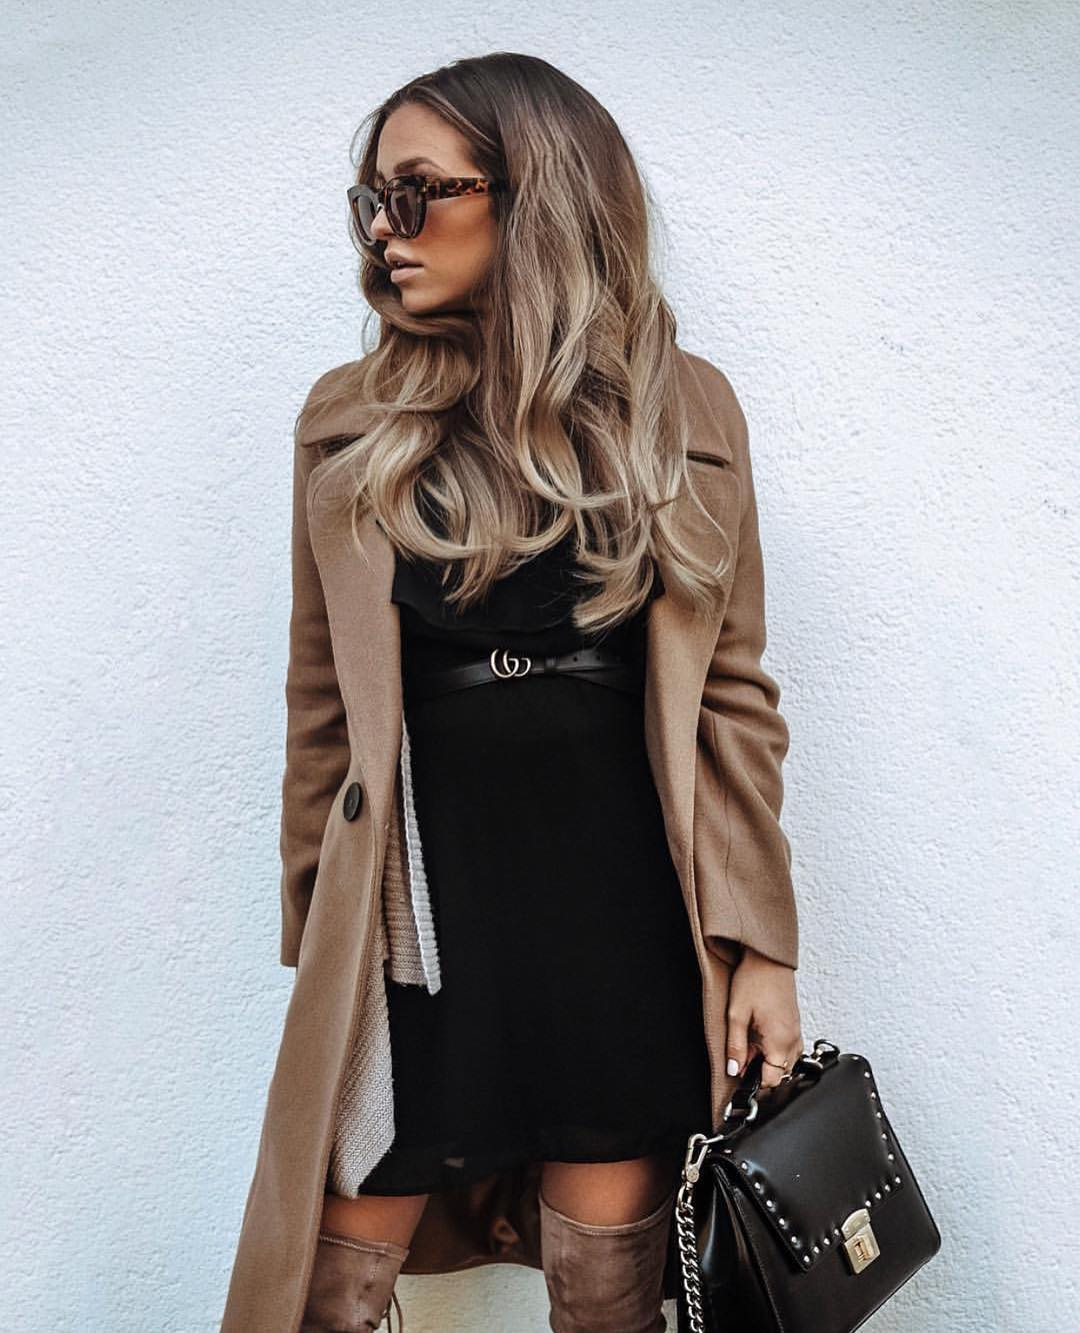 Camel Coat And LBD With OTK Boots For Autumn 2019